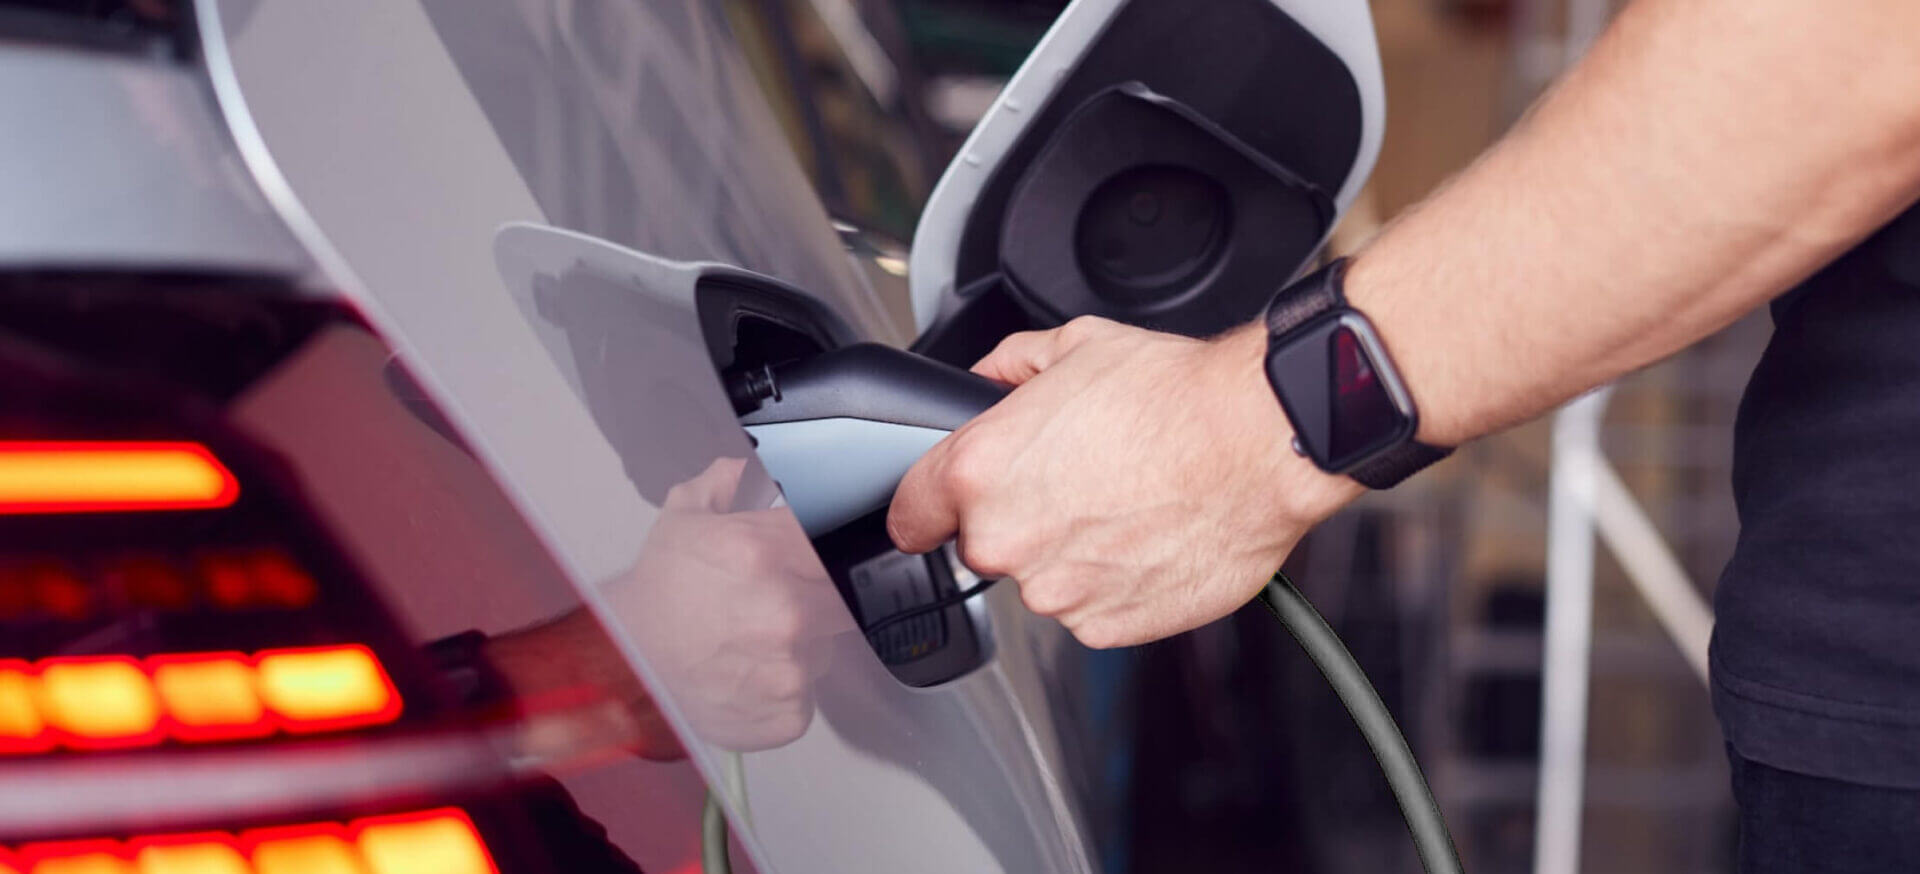 A man's hand inserting an electric charger into the charging port of his car